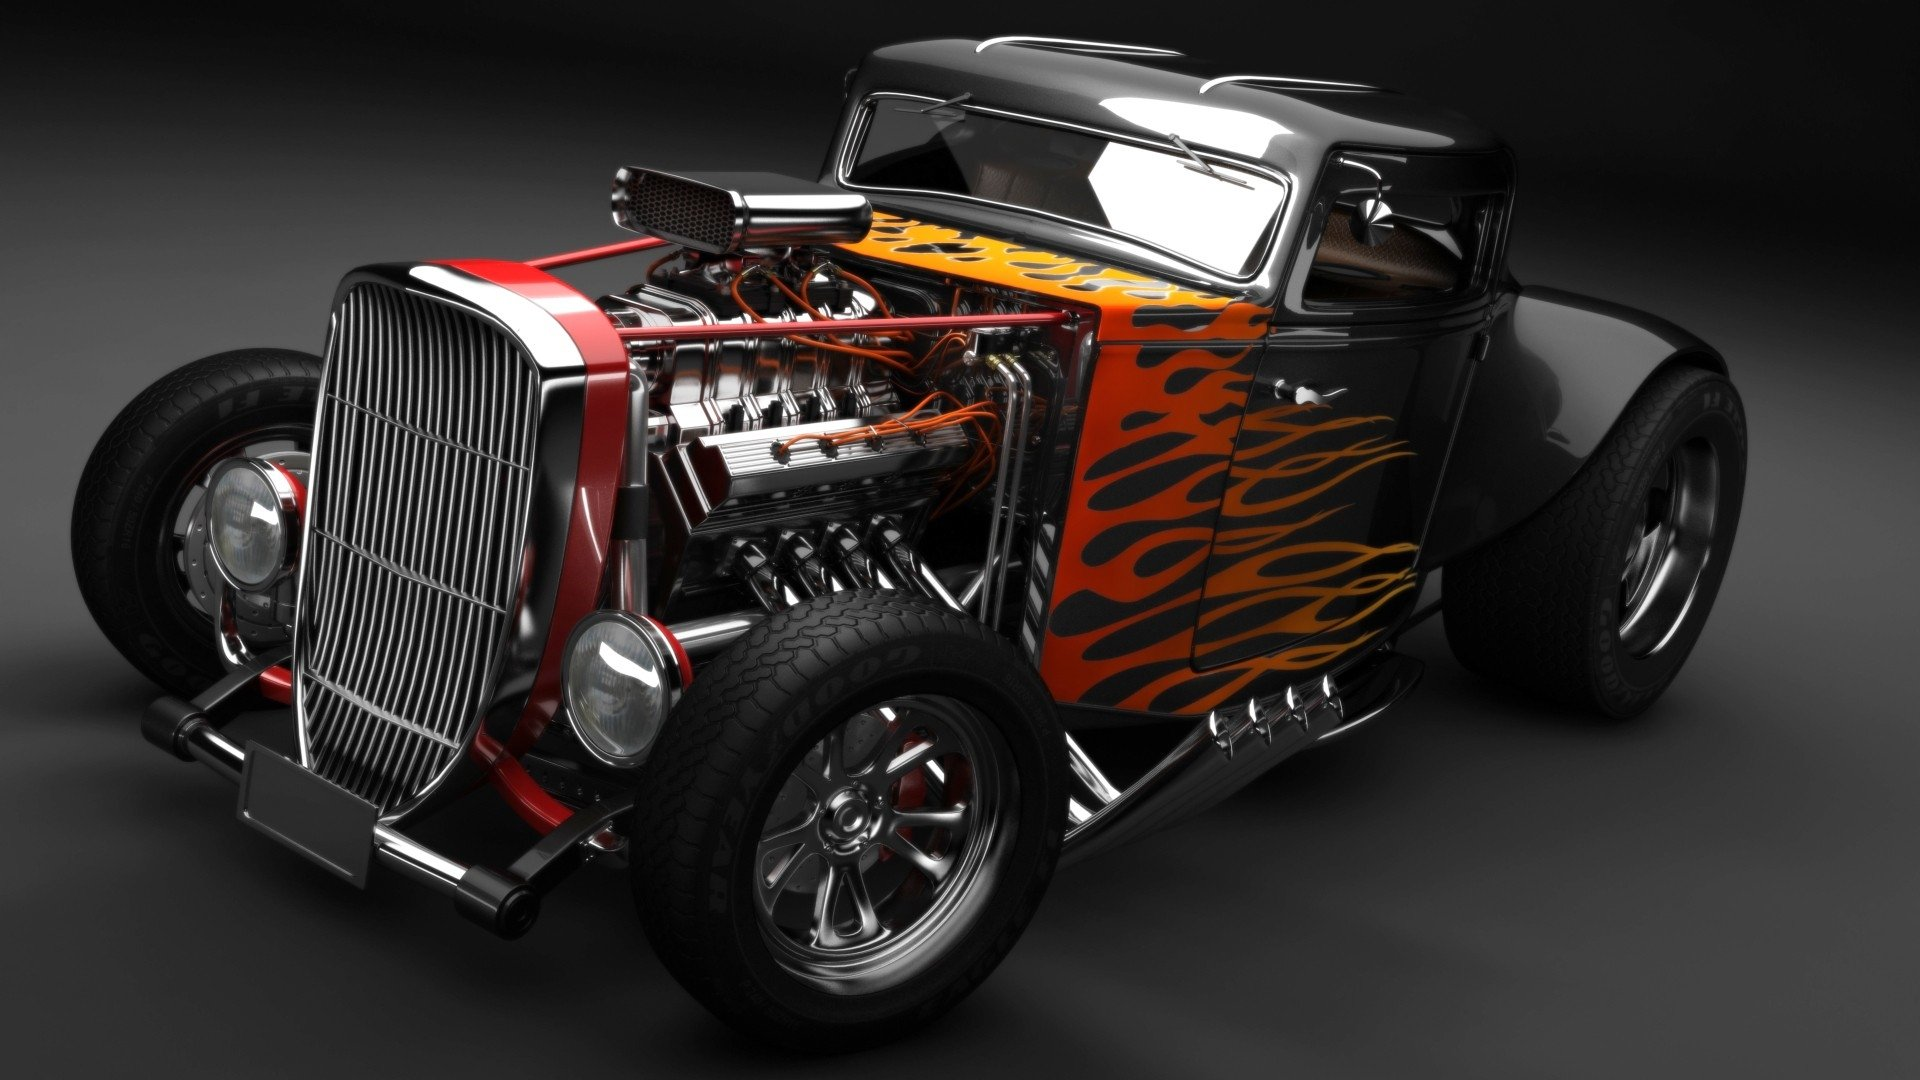 581 Hot Rod HD Wallpapers | Background Images - Wallpaper Abyss